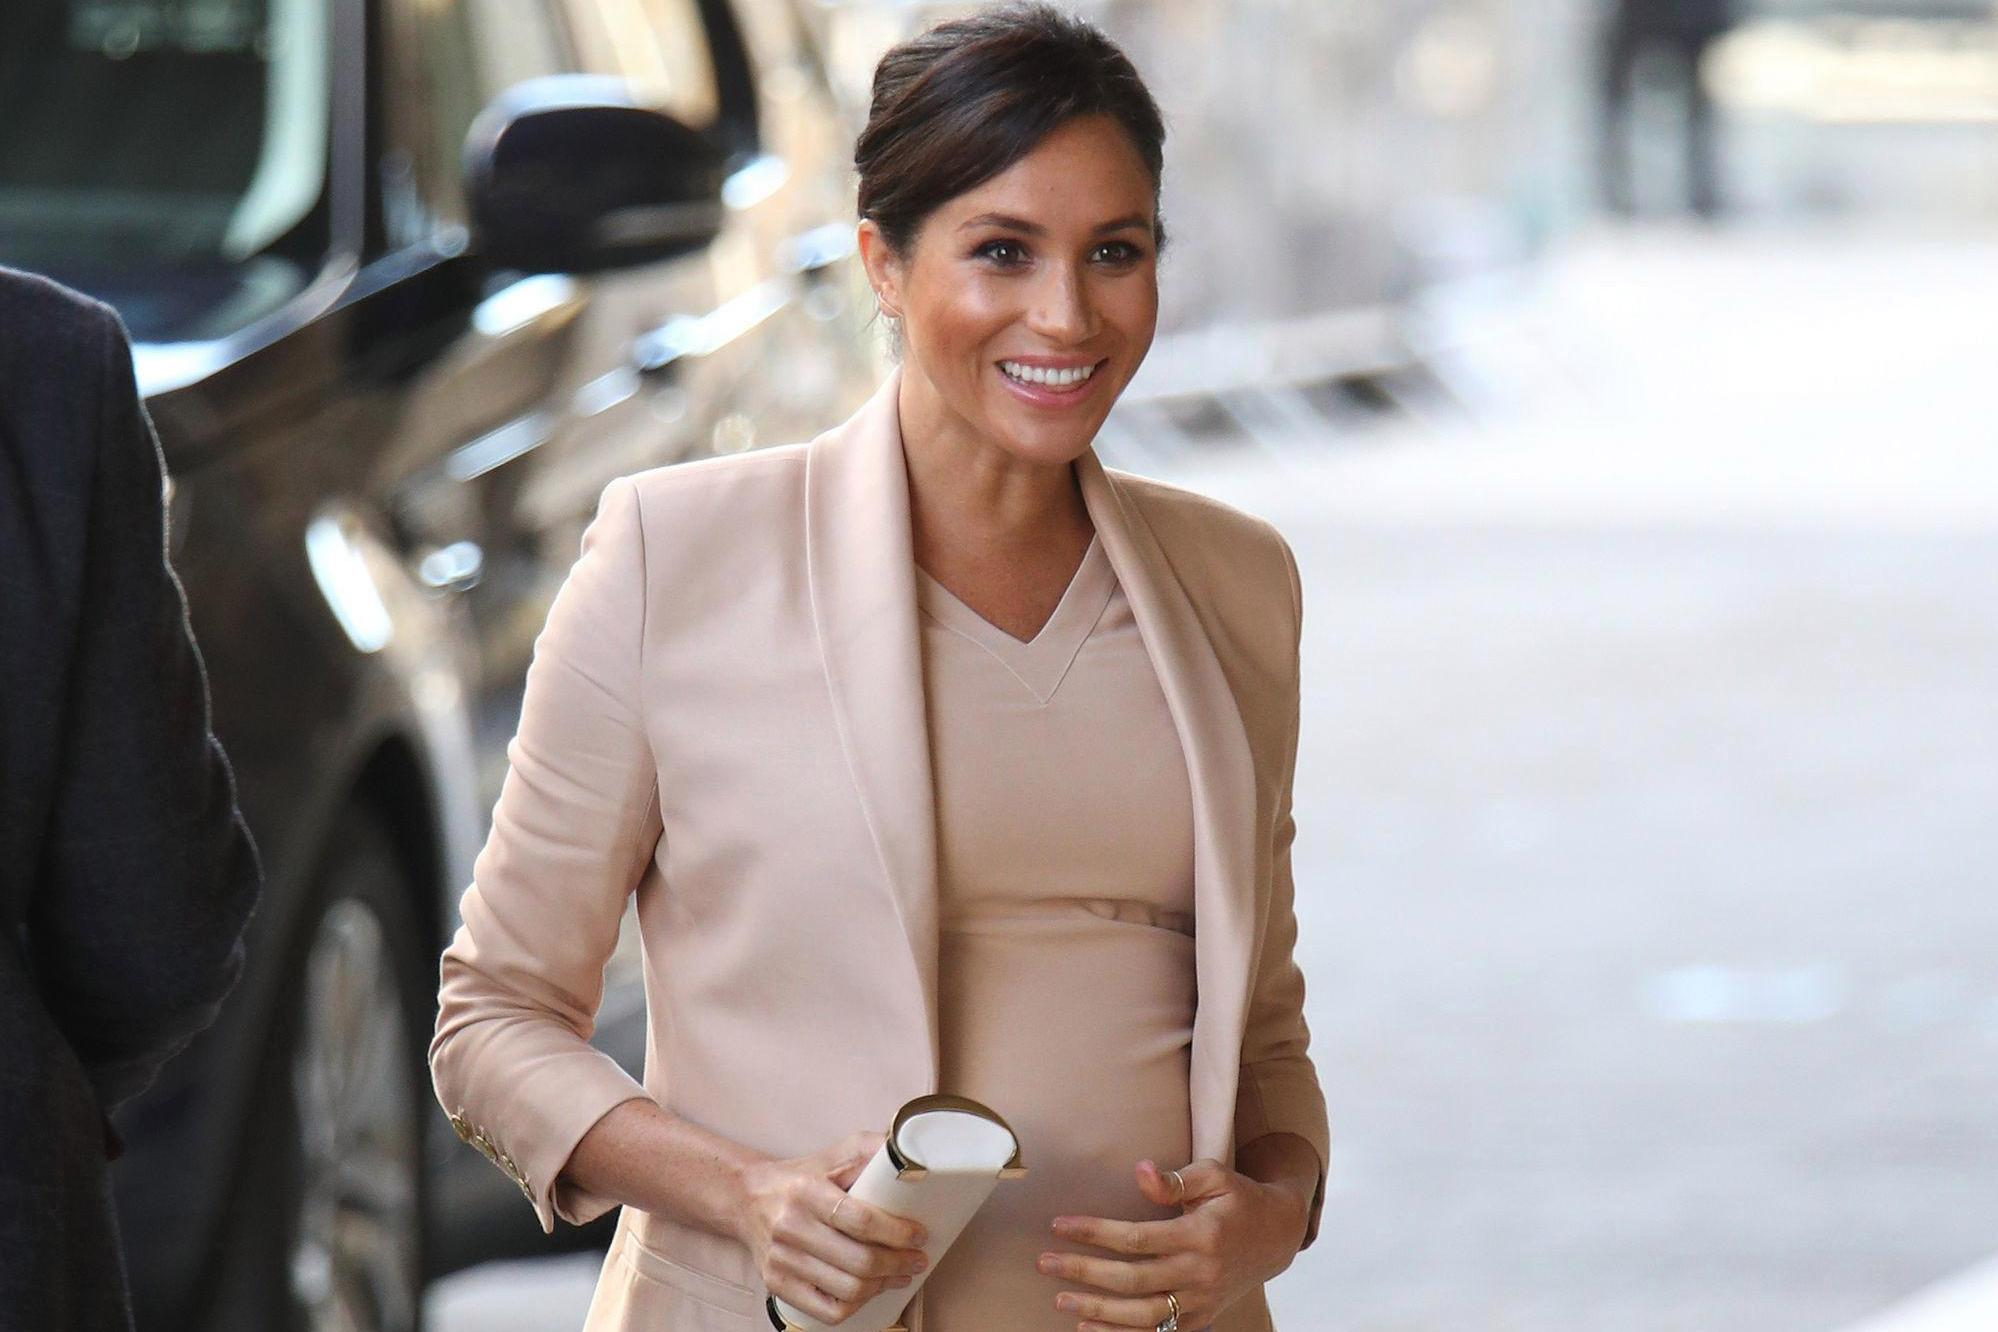 Pregnant Meghan Markle has stopped closing car doors after stark warning about terror attacks